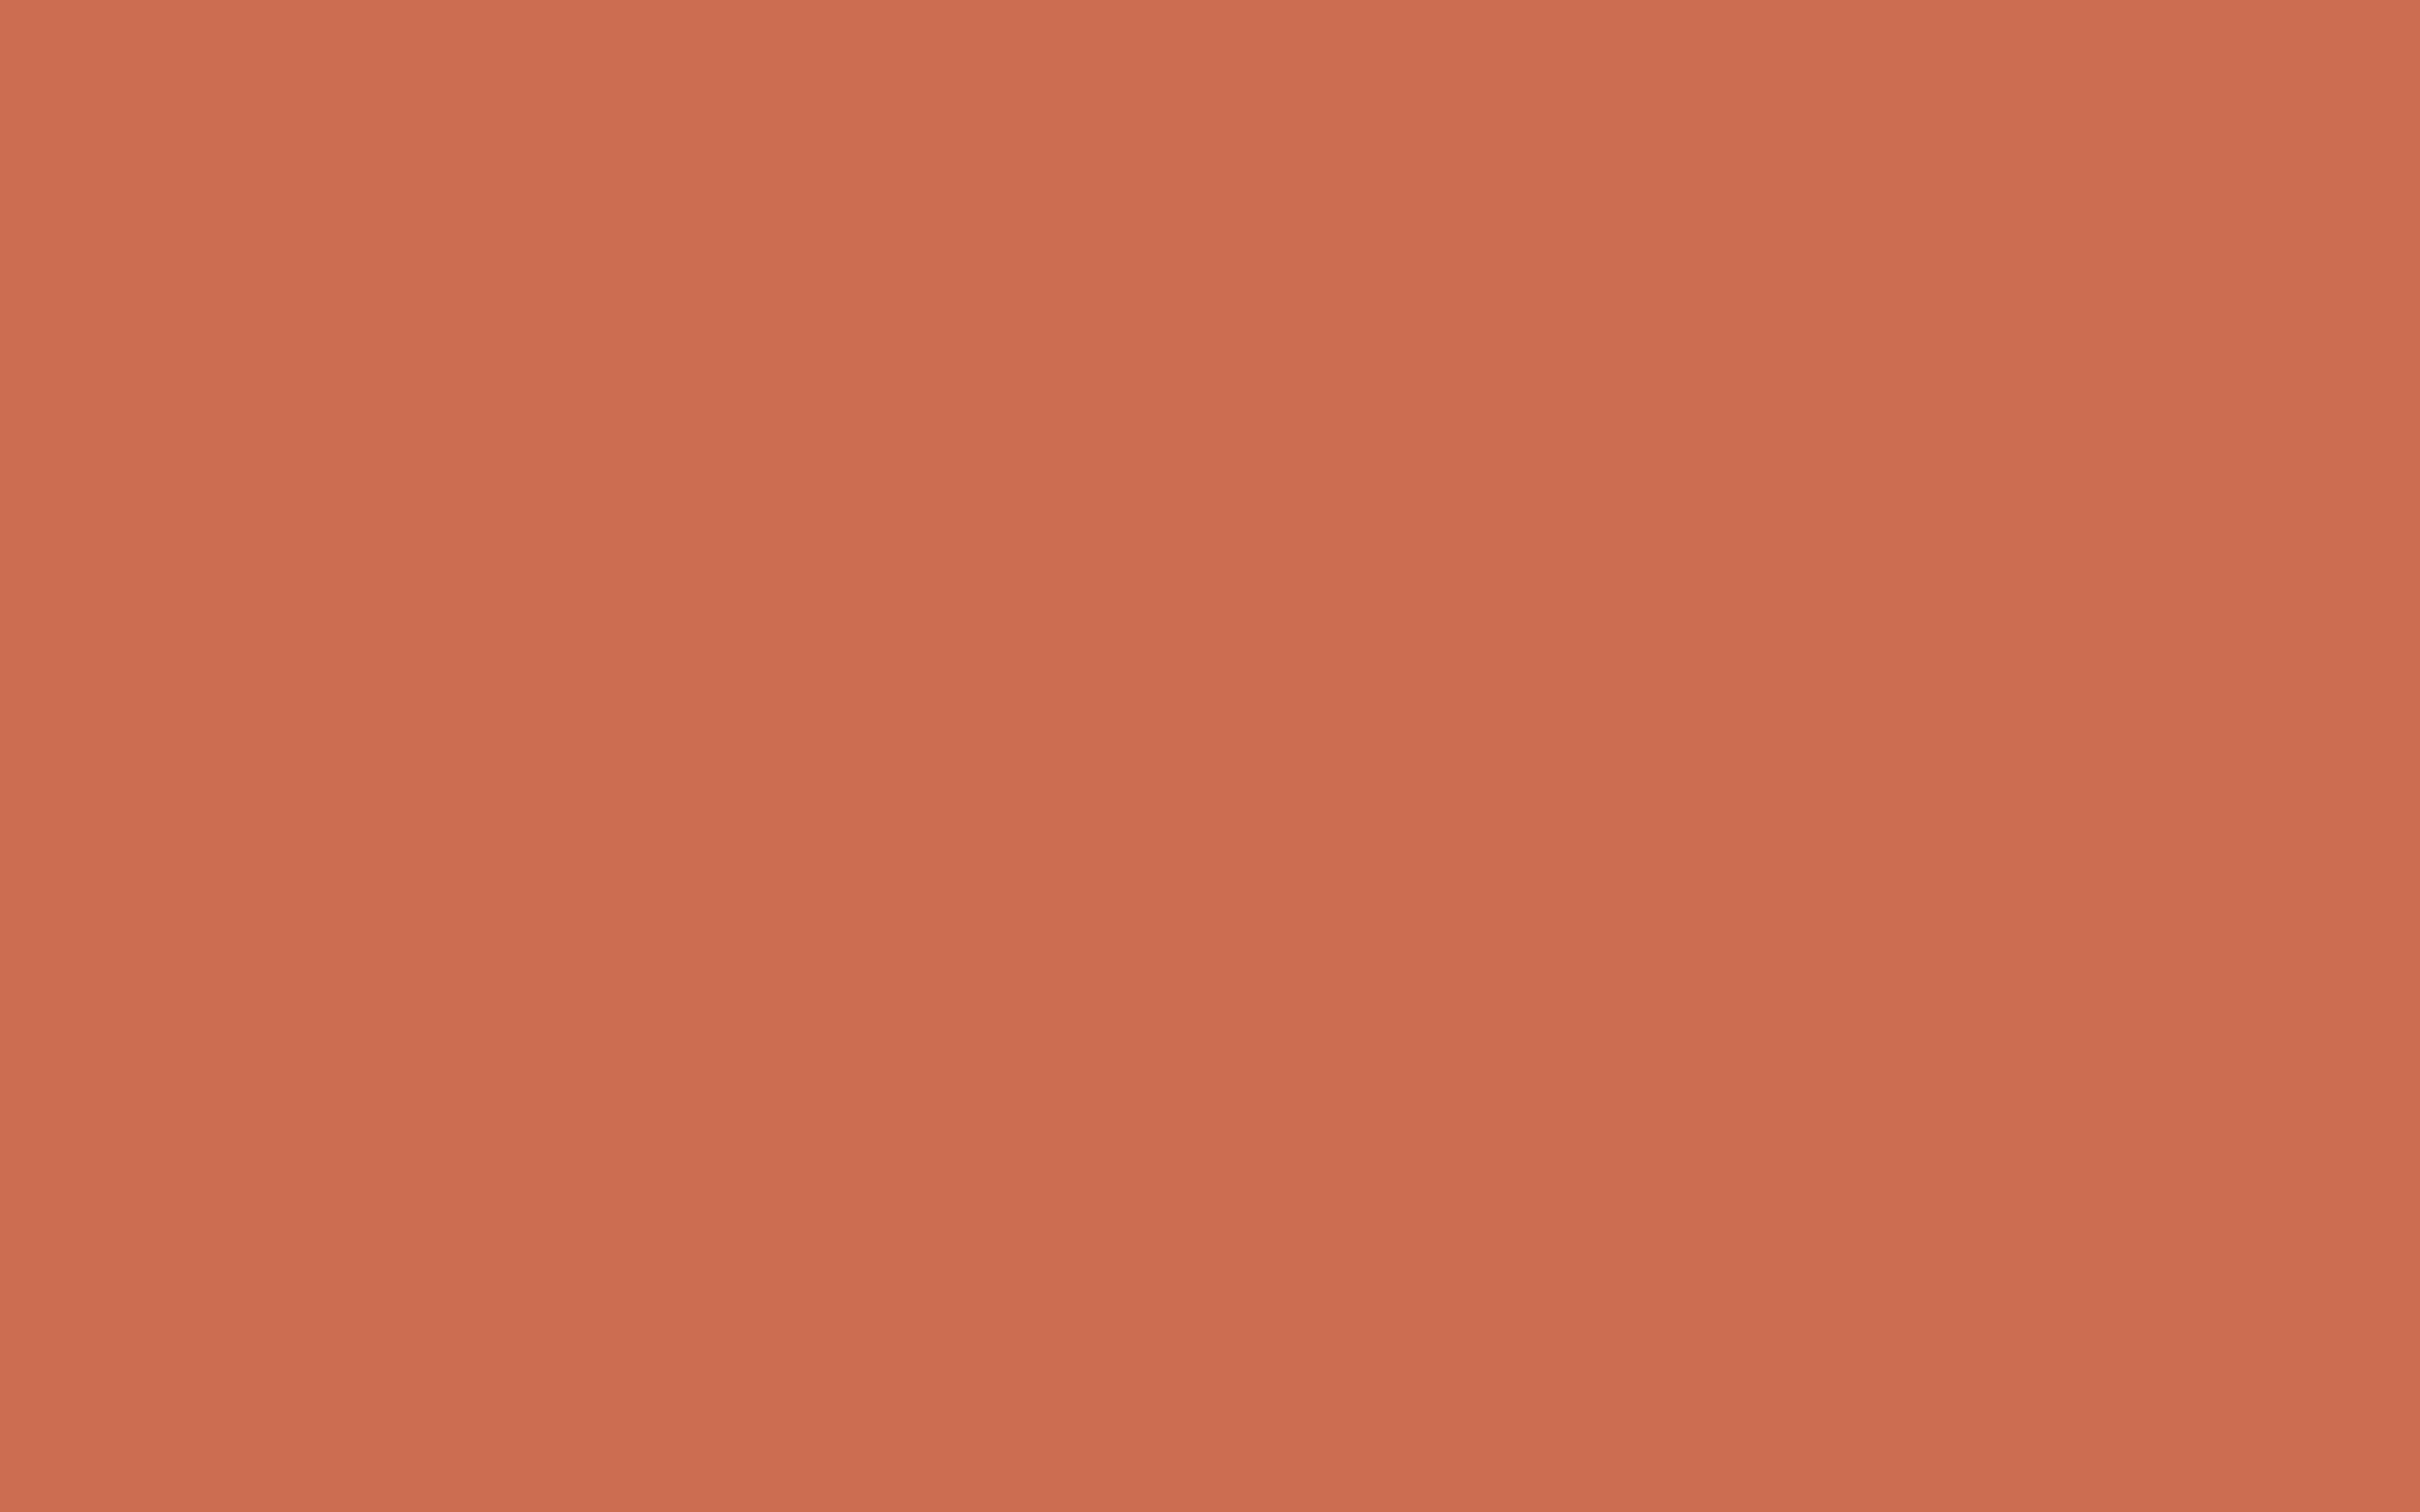 2560x1600 Copper Red Solid Color Background